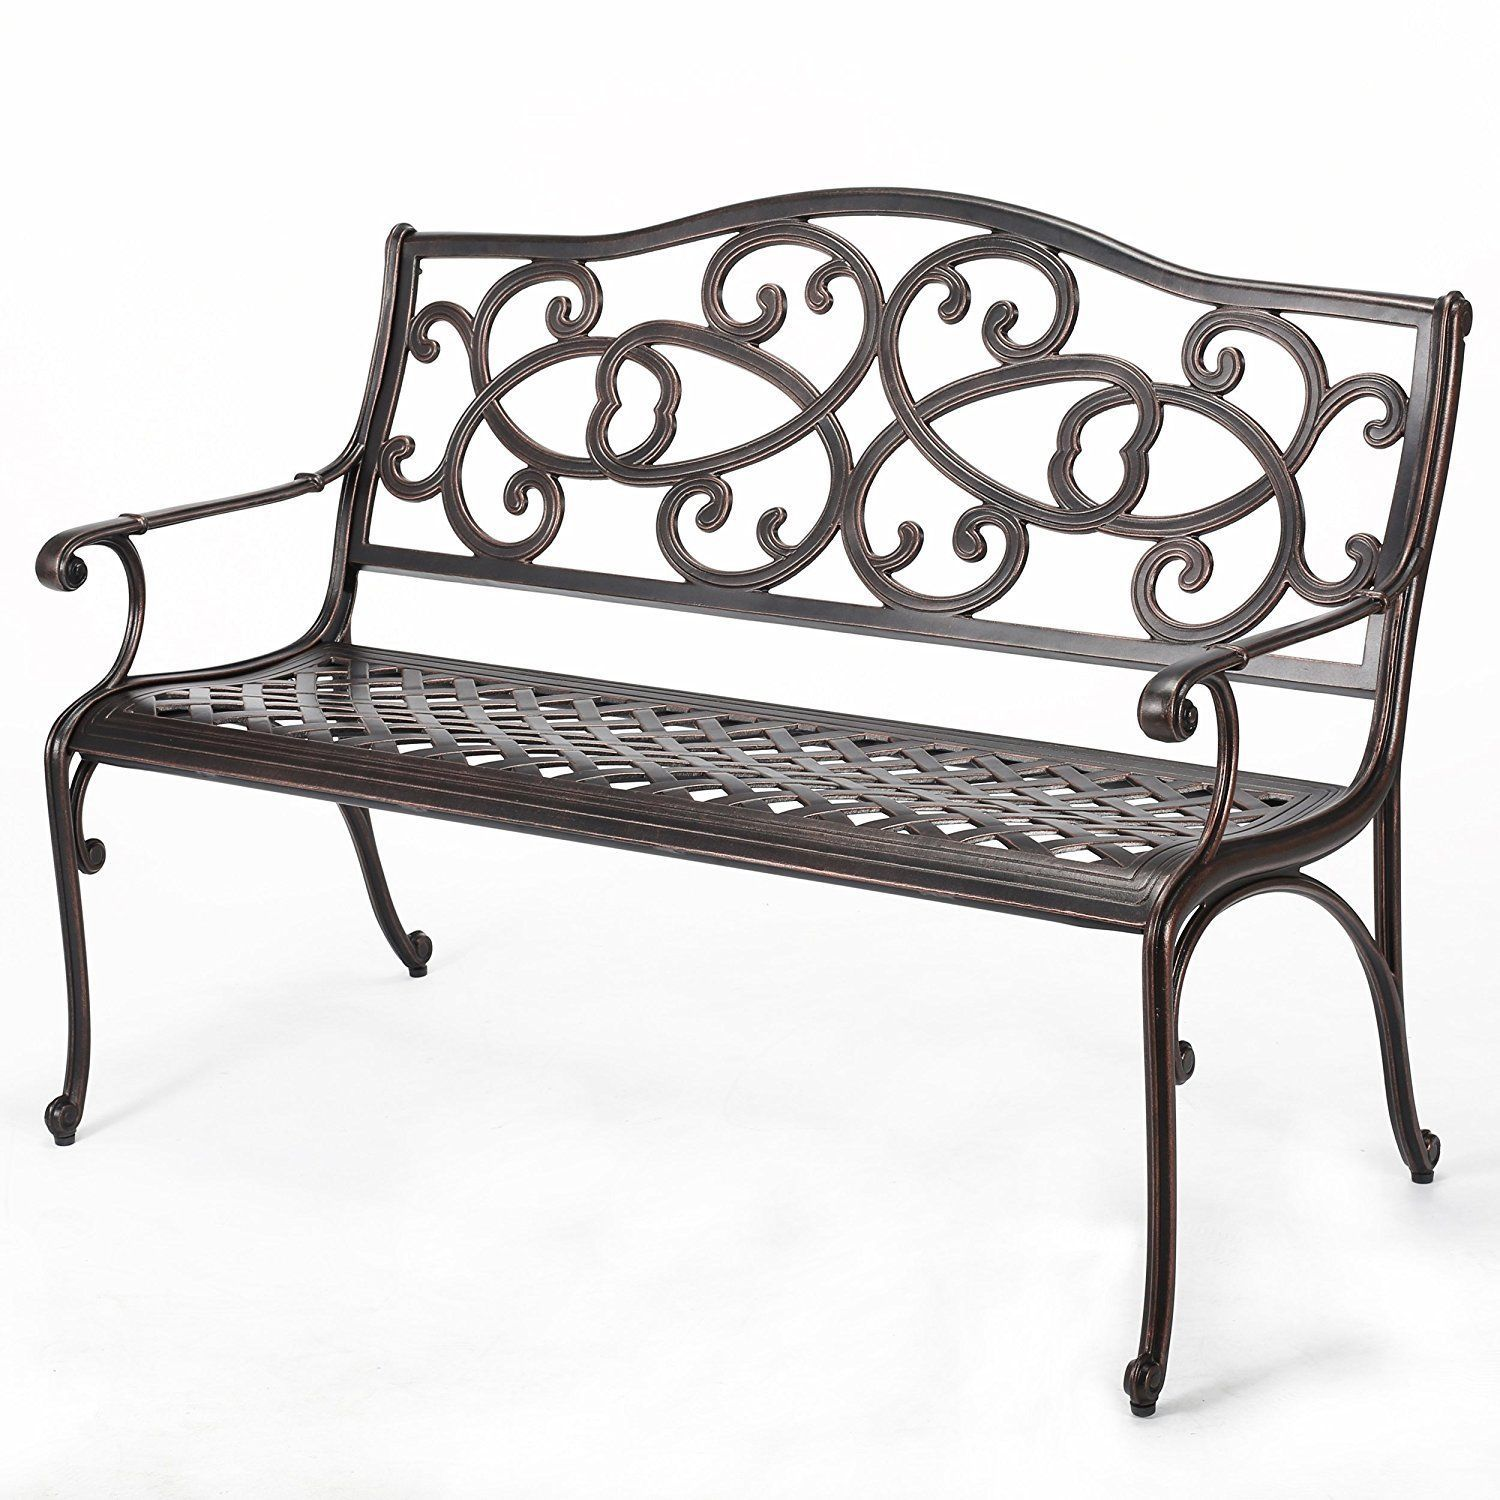 #Cast #Aluminum #Garden #Bench #Outdoor #Home #Patio #Backyard